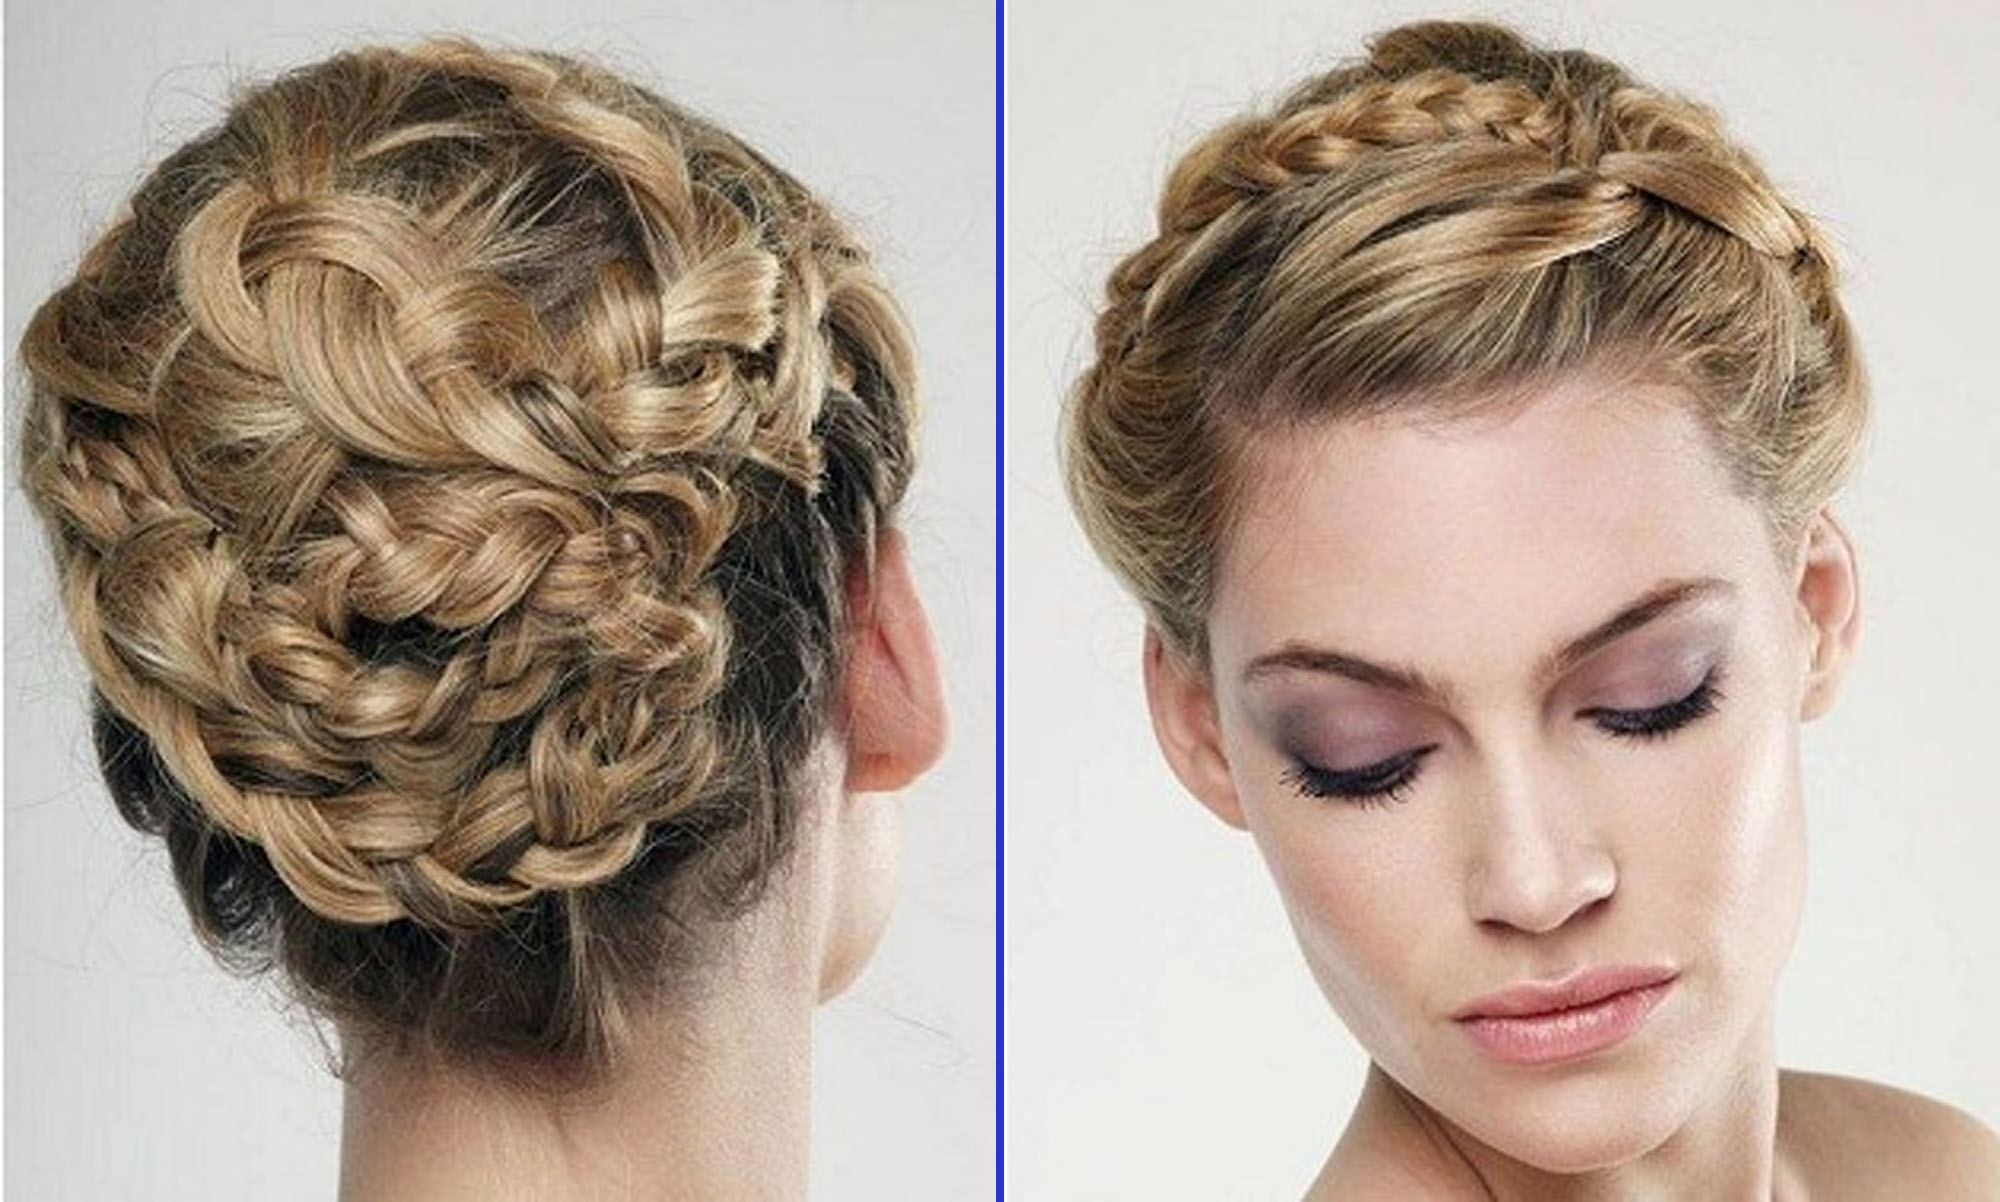 Braided Updo Hairstyles Wedding For Women Hairdresser (View 2 of 15)